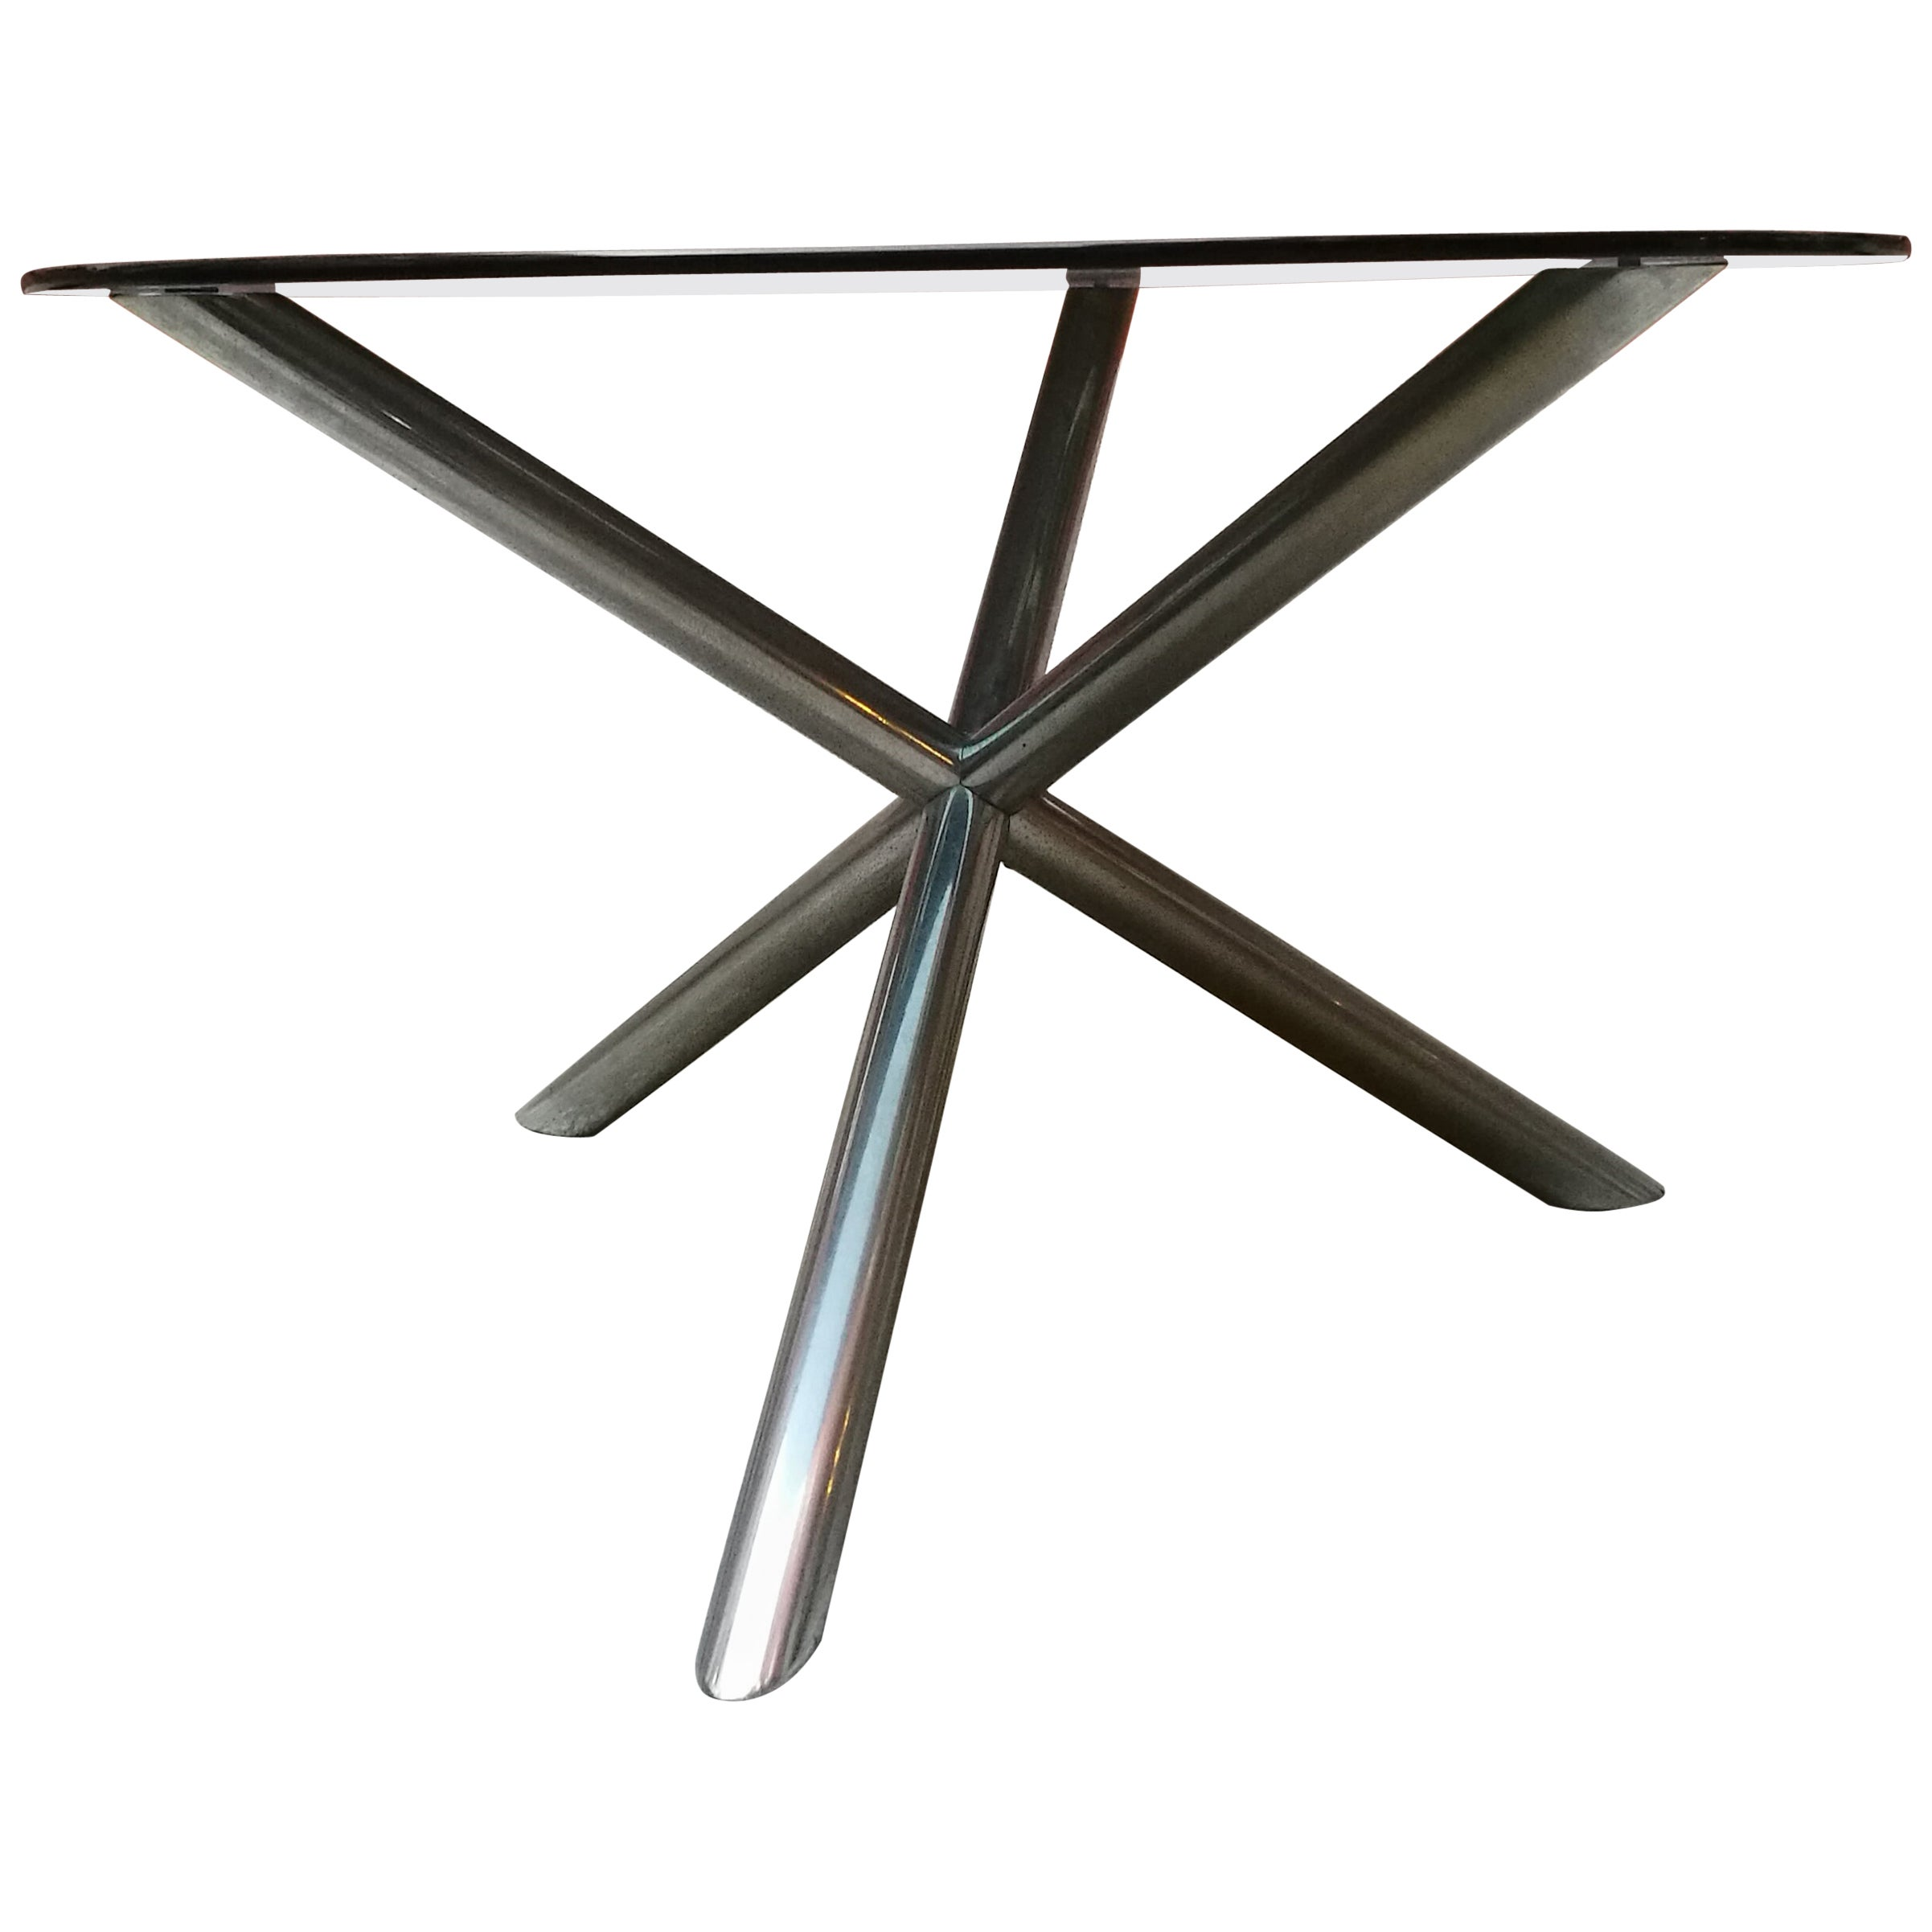 Italian Round Smoked Glass and Chromed Steel Dining Table, 1970s